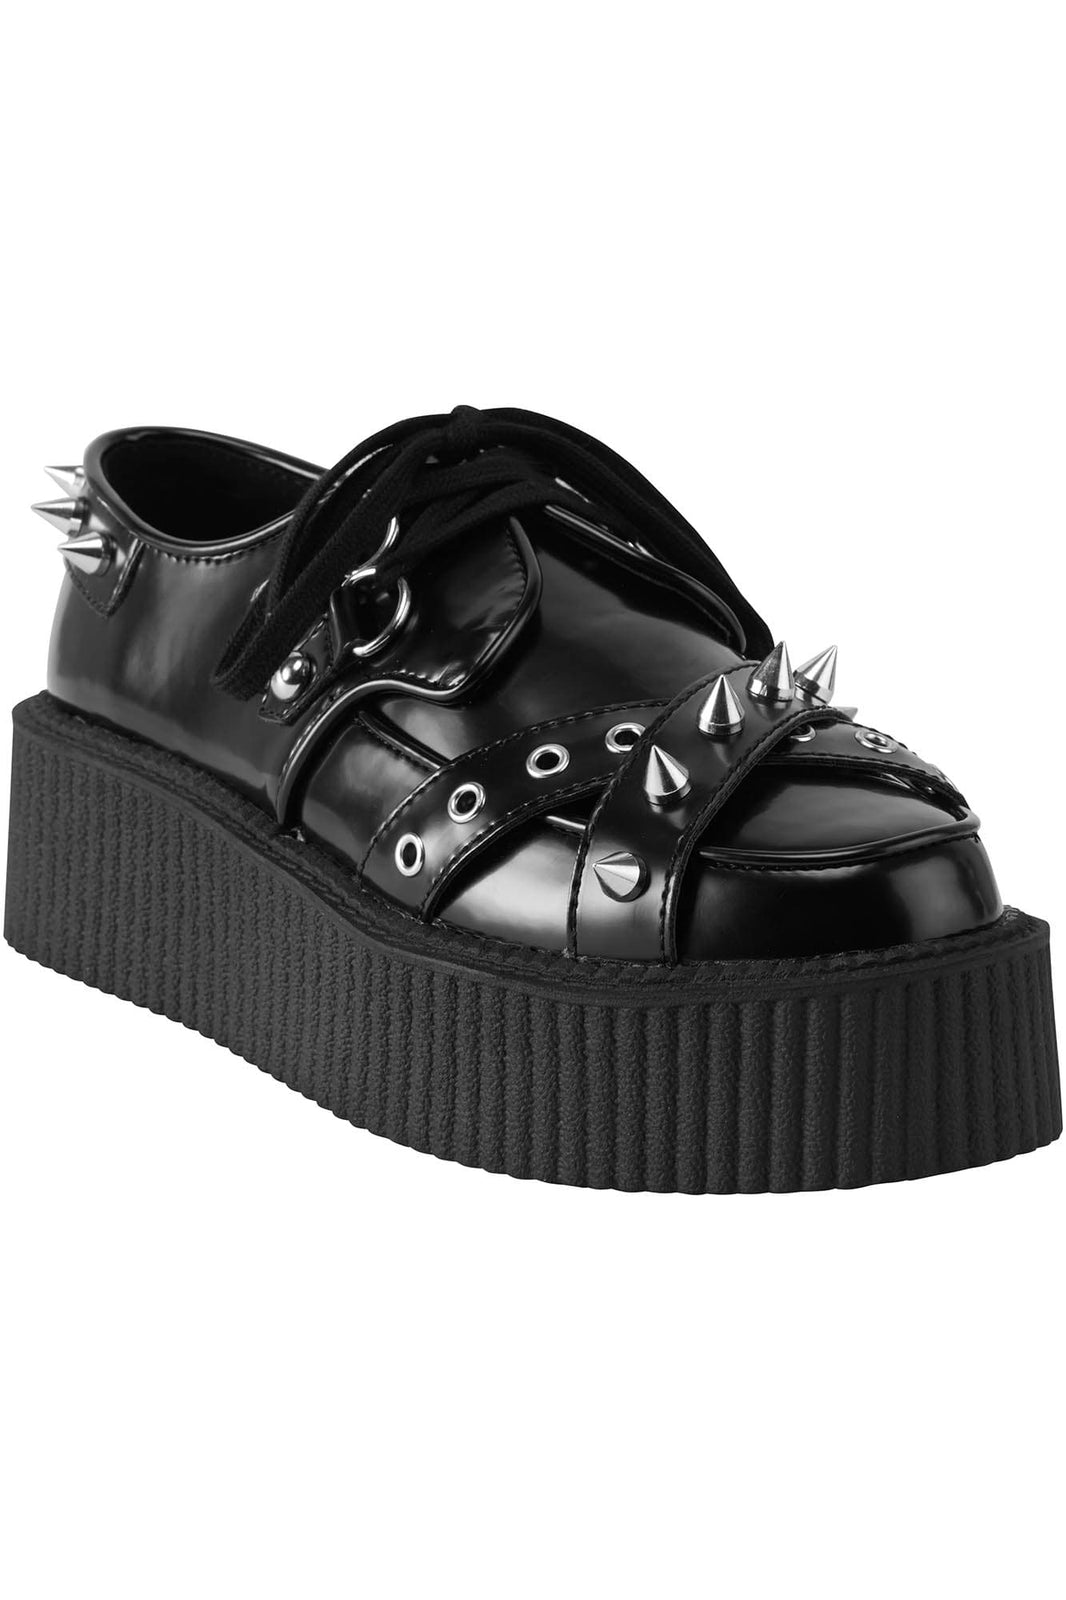 Twisted Creepers